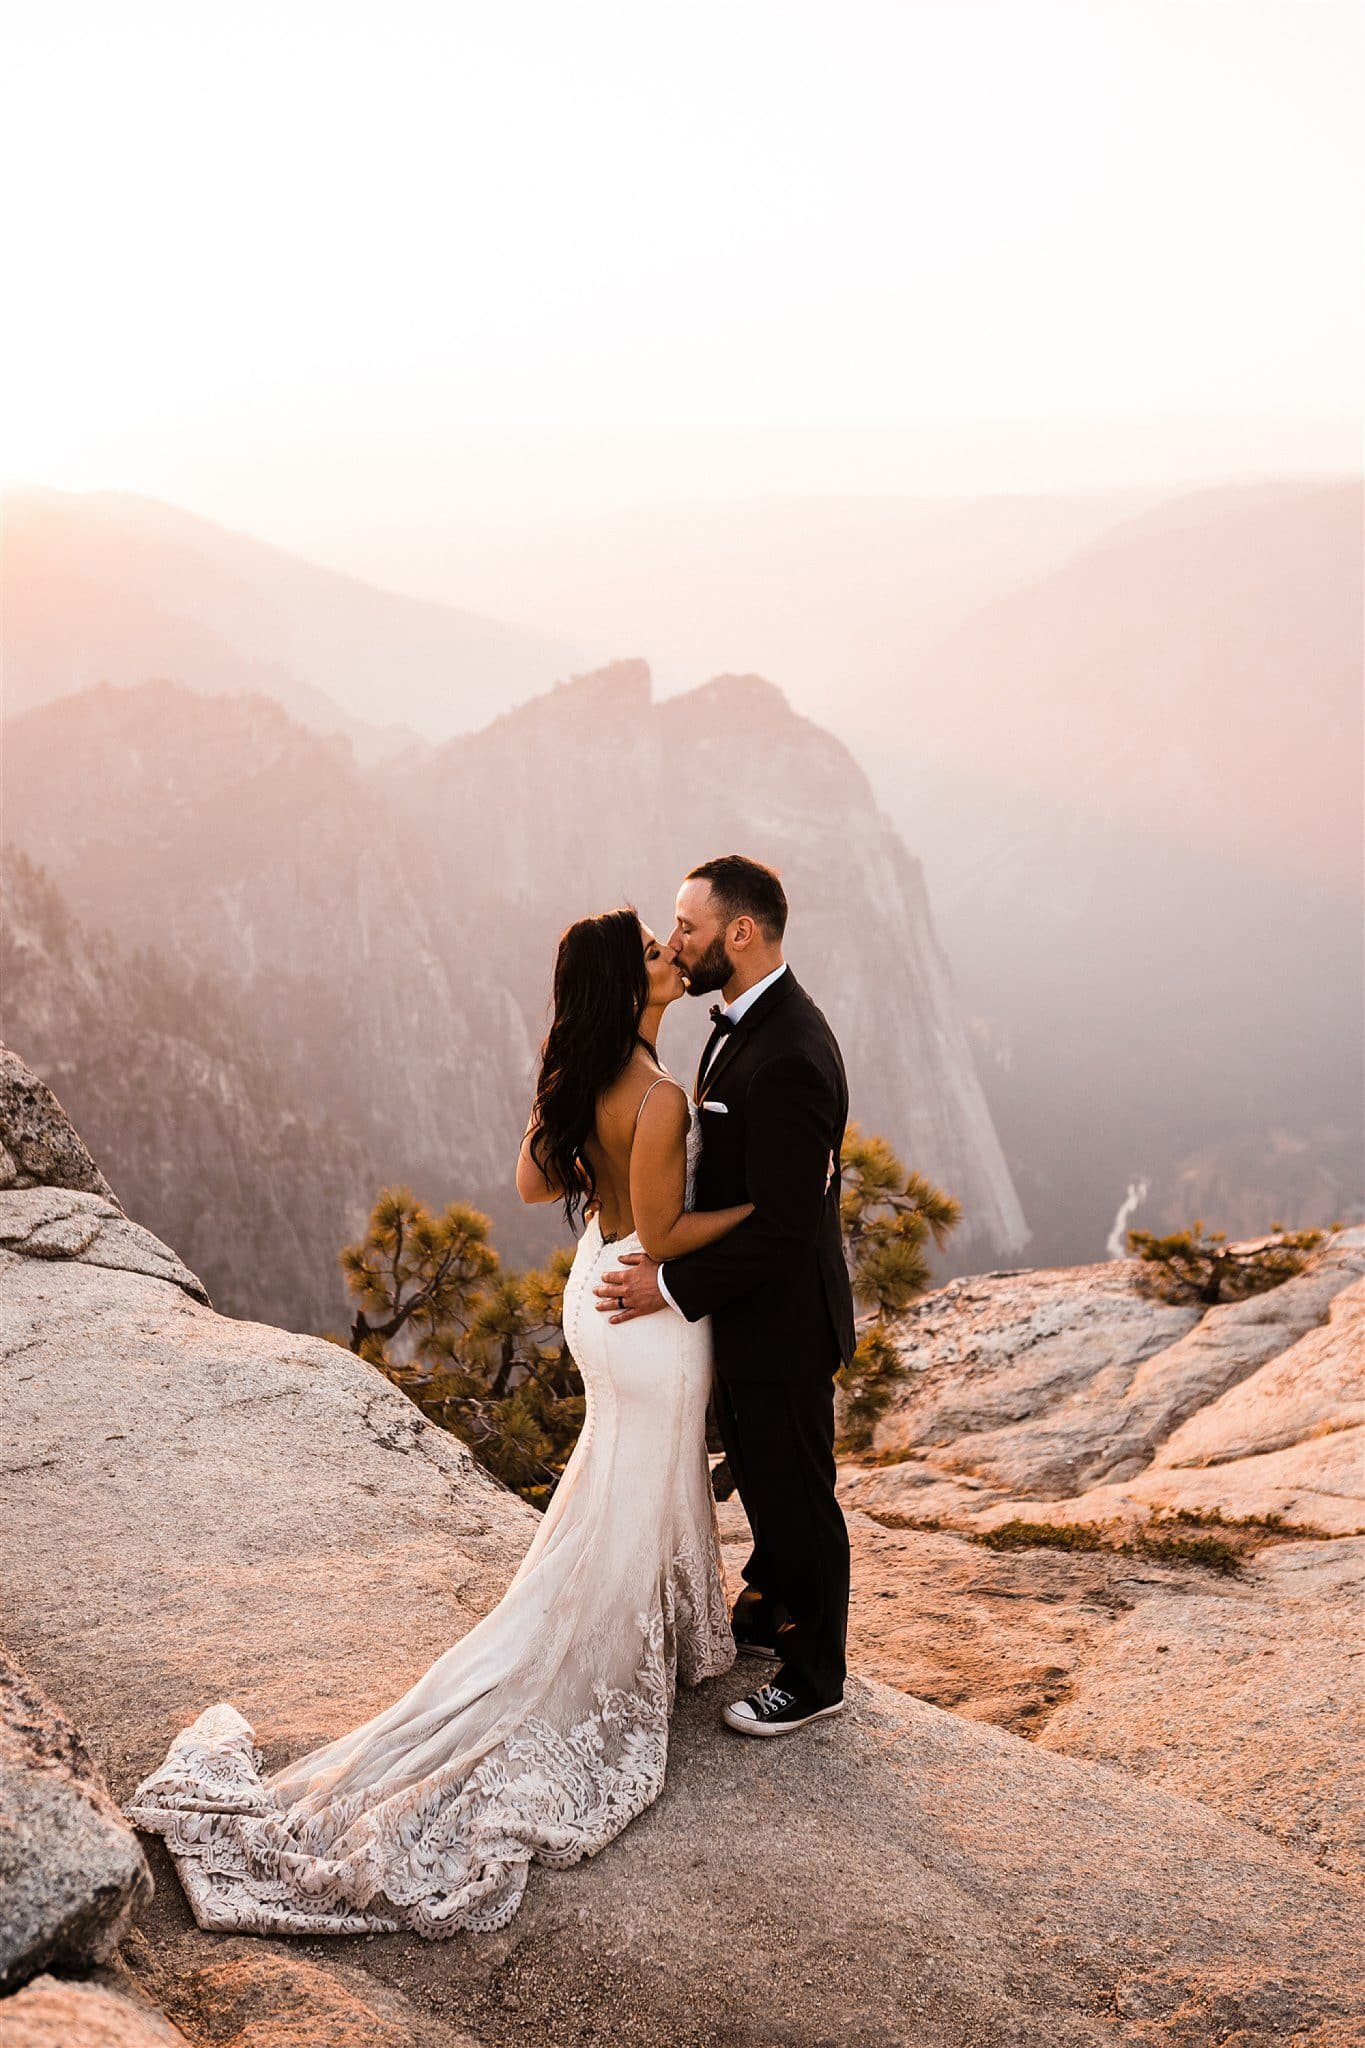 Taft_Point_Elopement_The_Foxes_Photography_0015.jpg